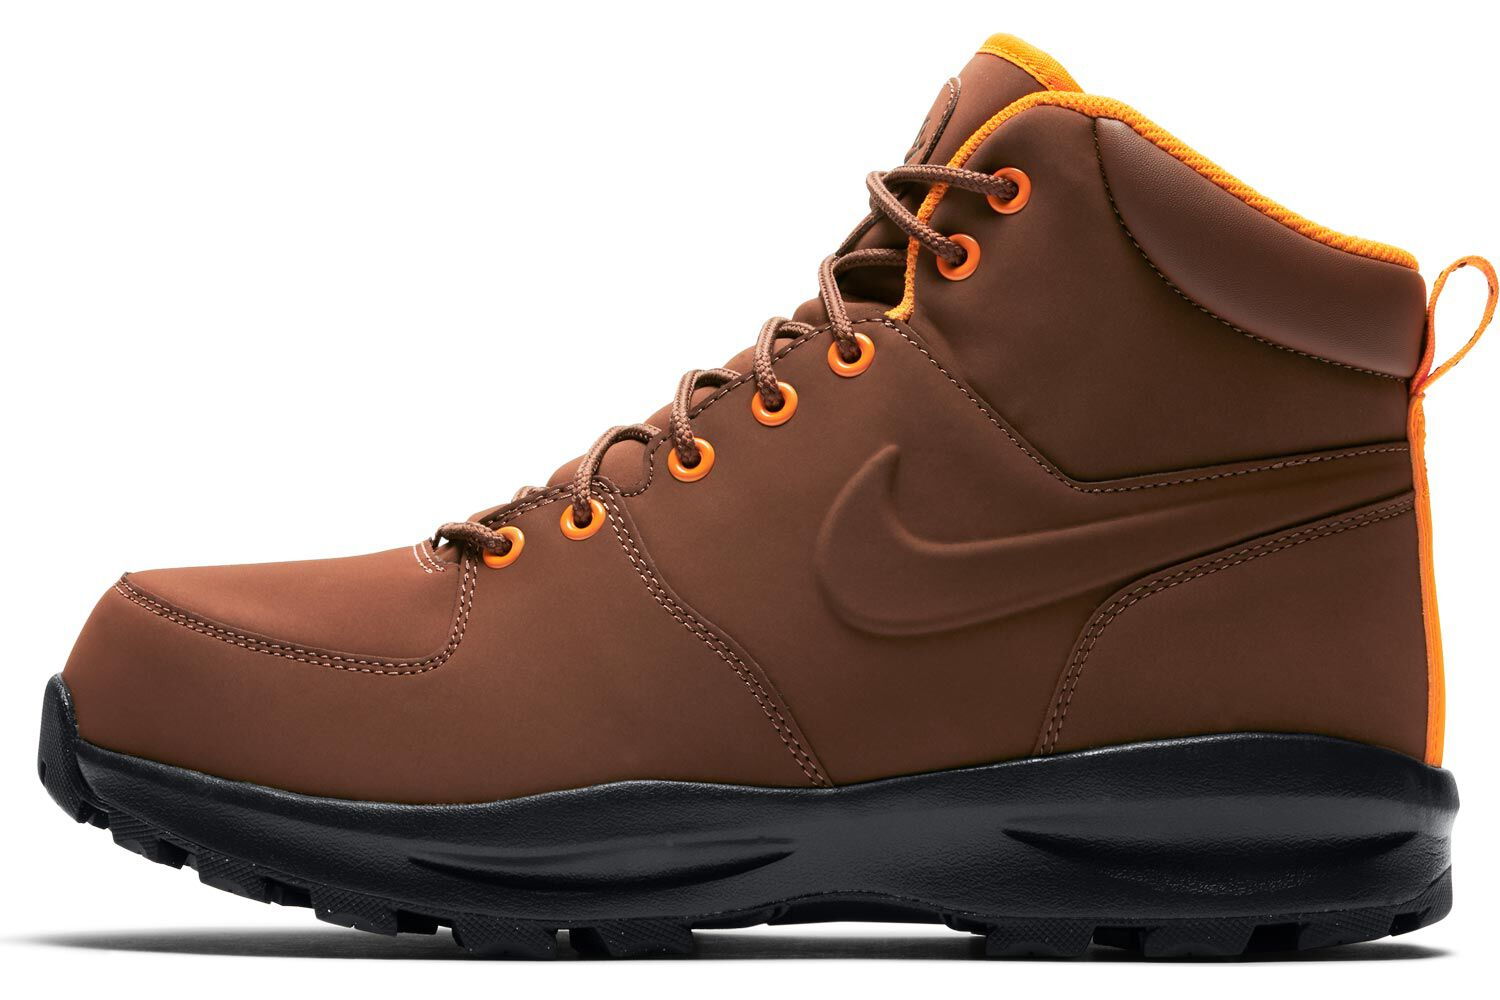 Nike Manoa Leather - Boots at Stylefile